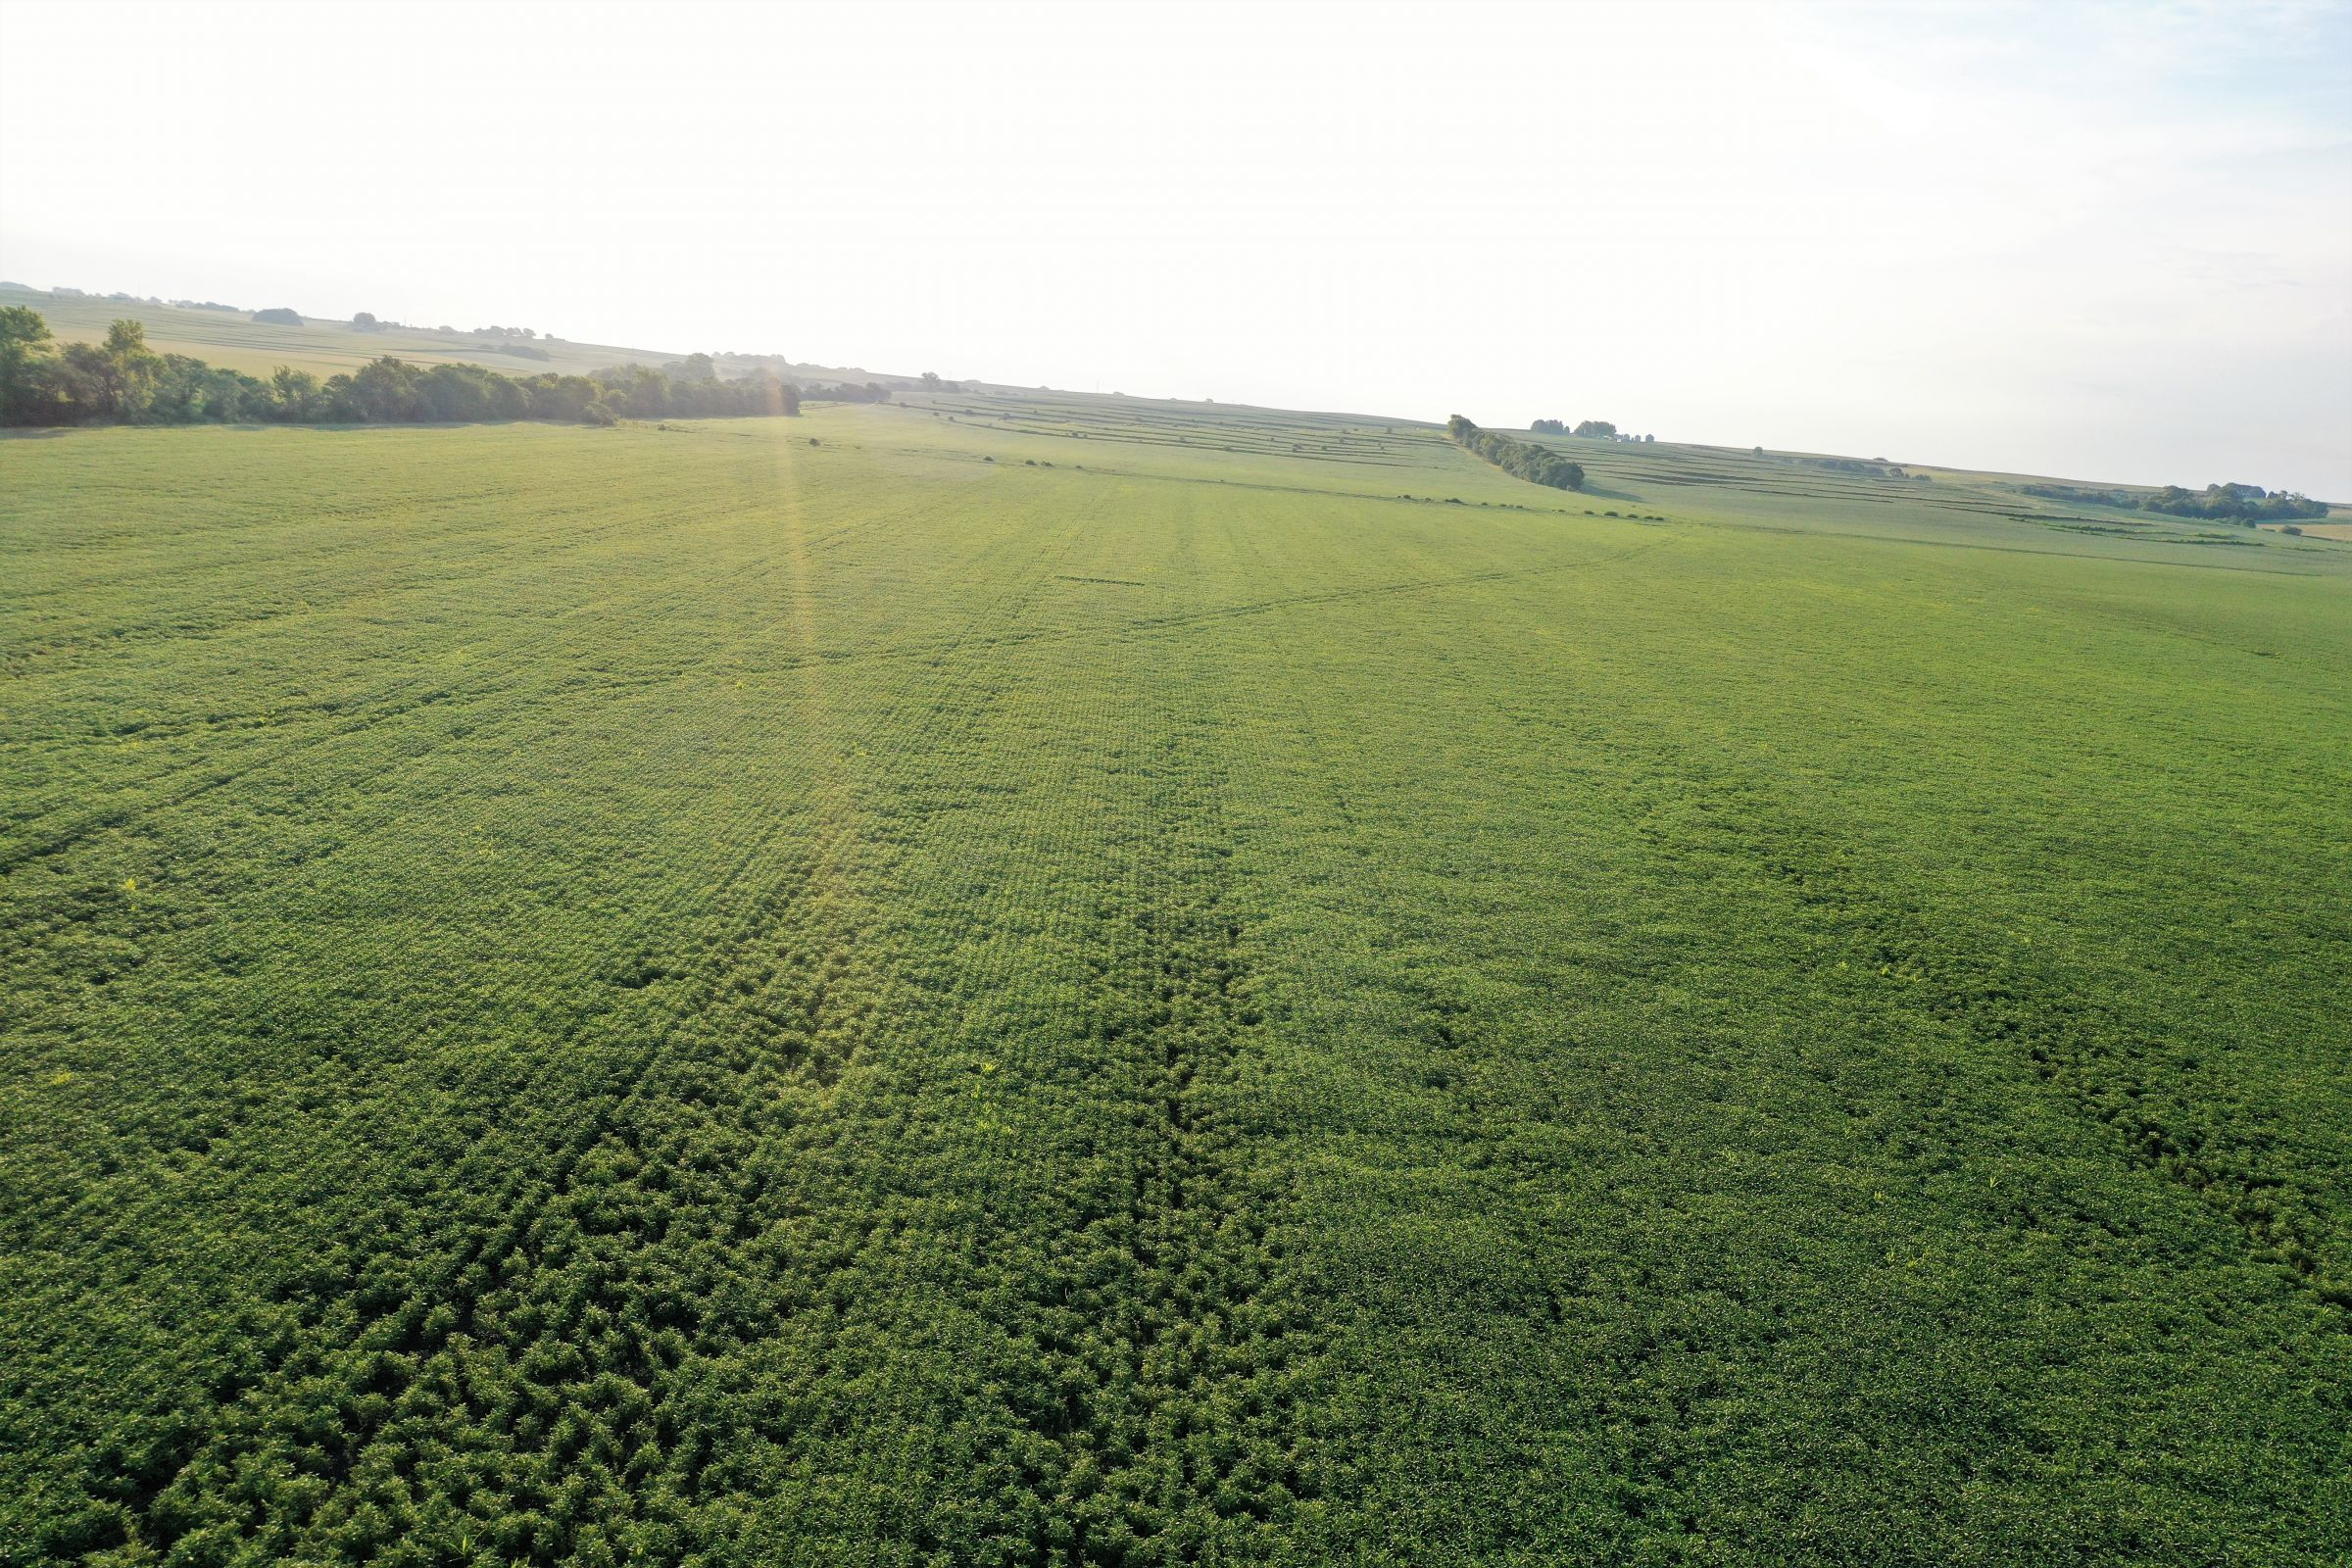 land-page-county-iowa-160-acres-listing-number-15117-1-2020-08-13-175513.jpg